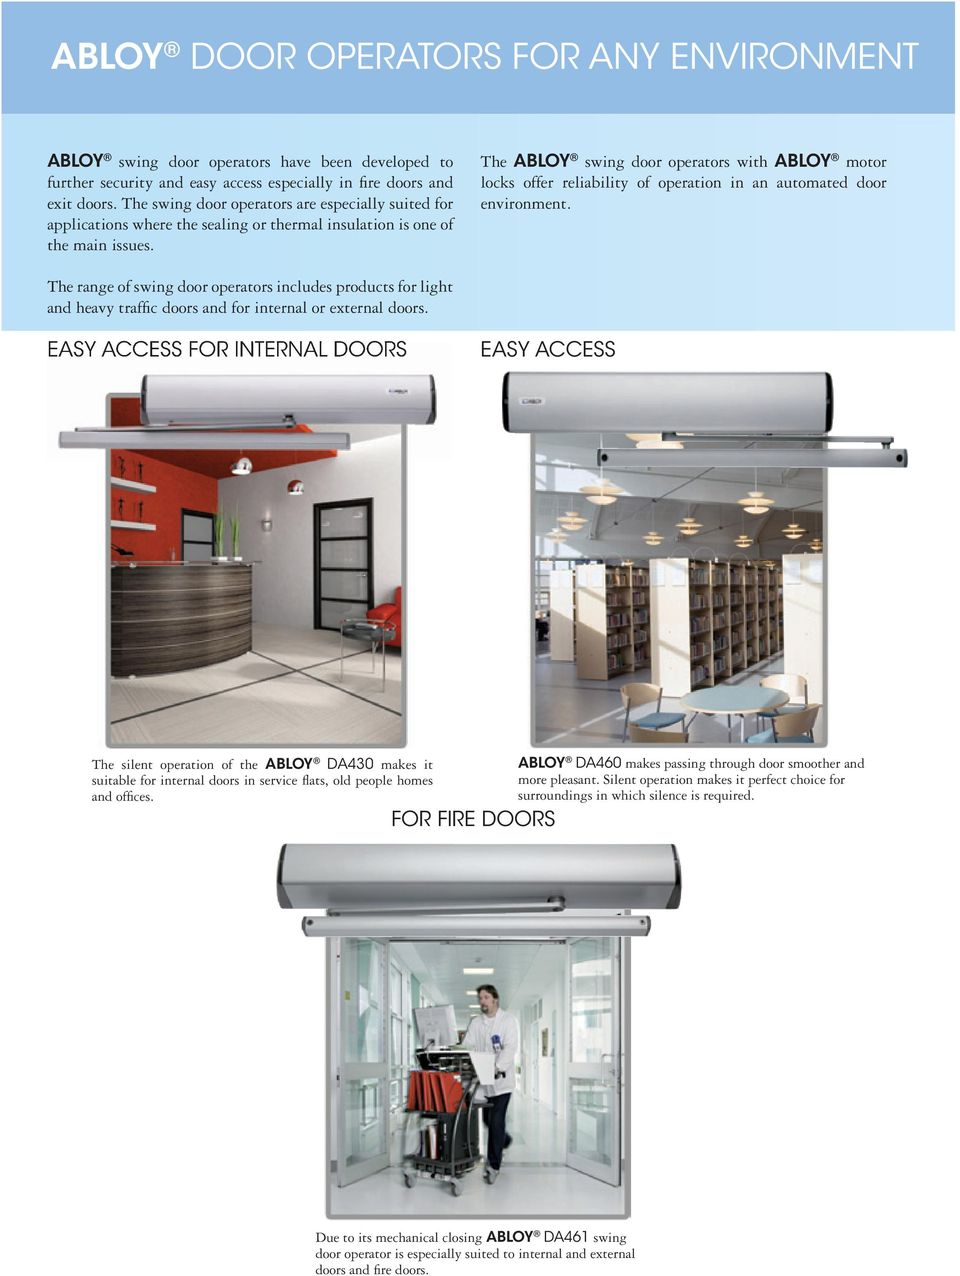 The ABLOY swing door operators with ABLOY motor locks offer reliability of operation in an automated door environment.